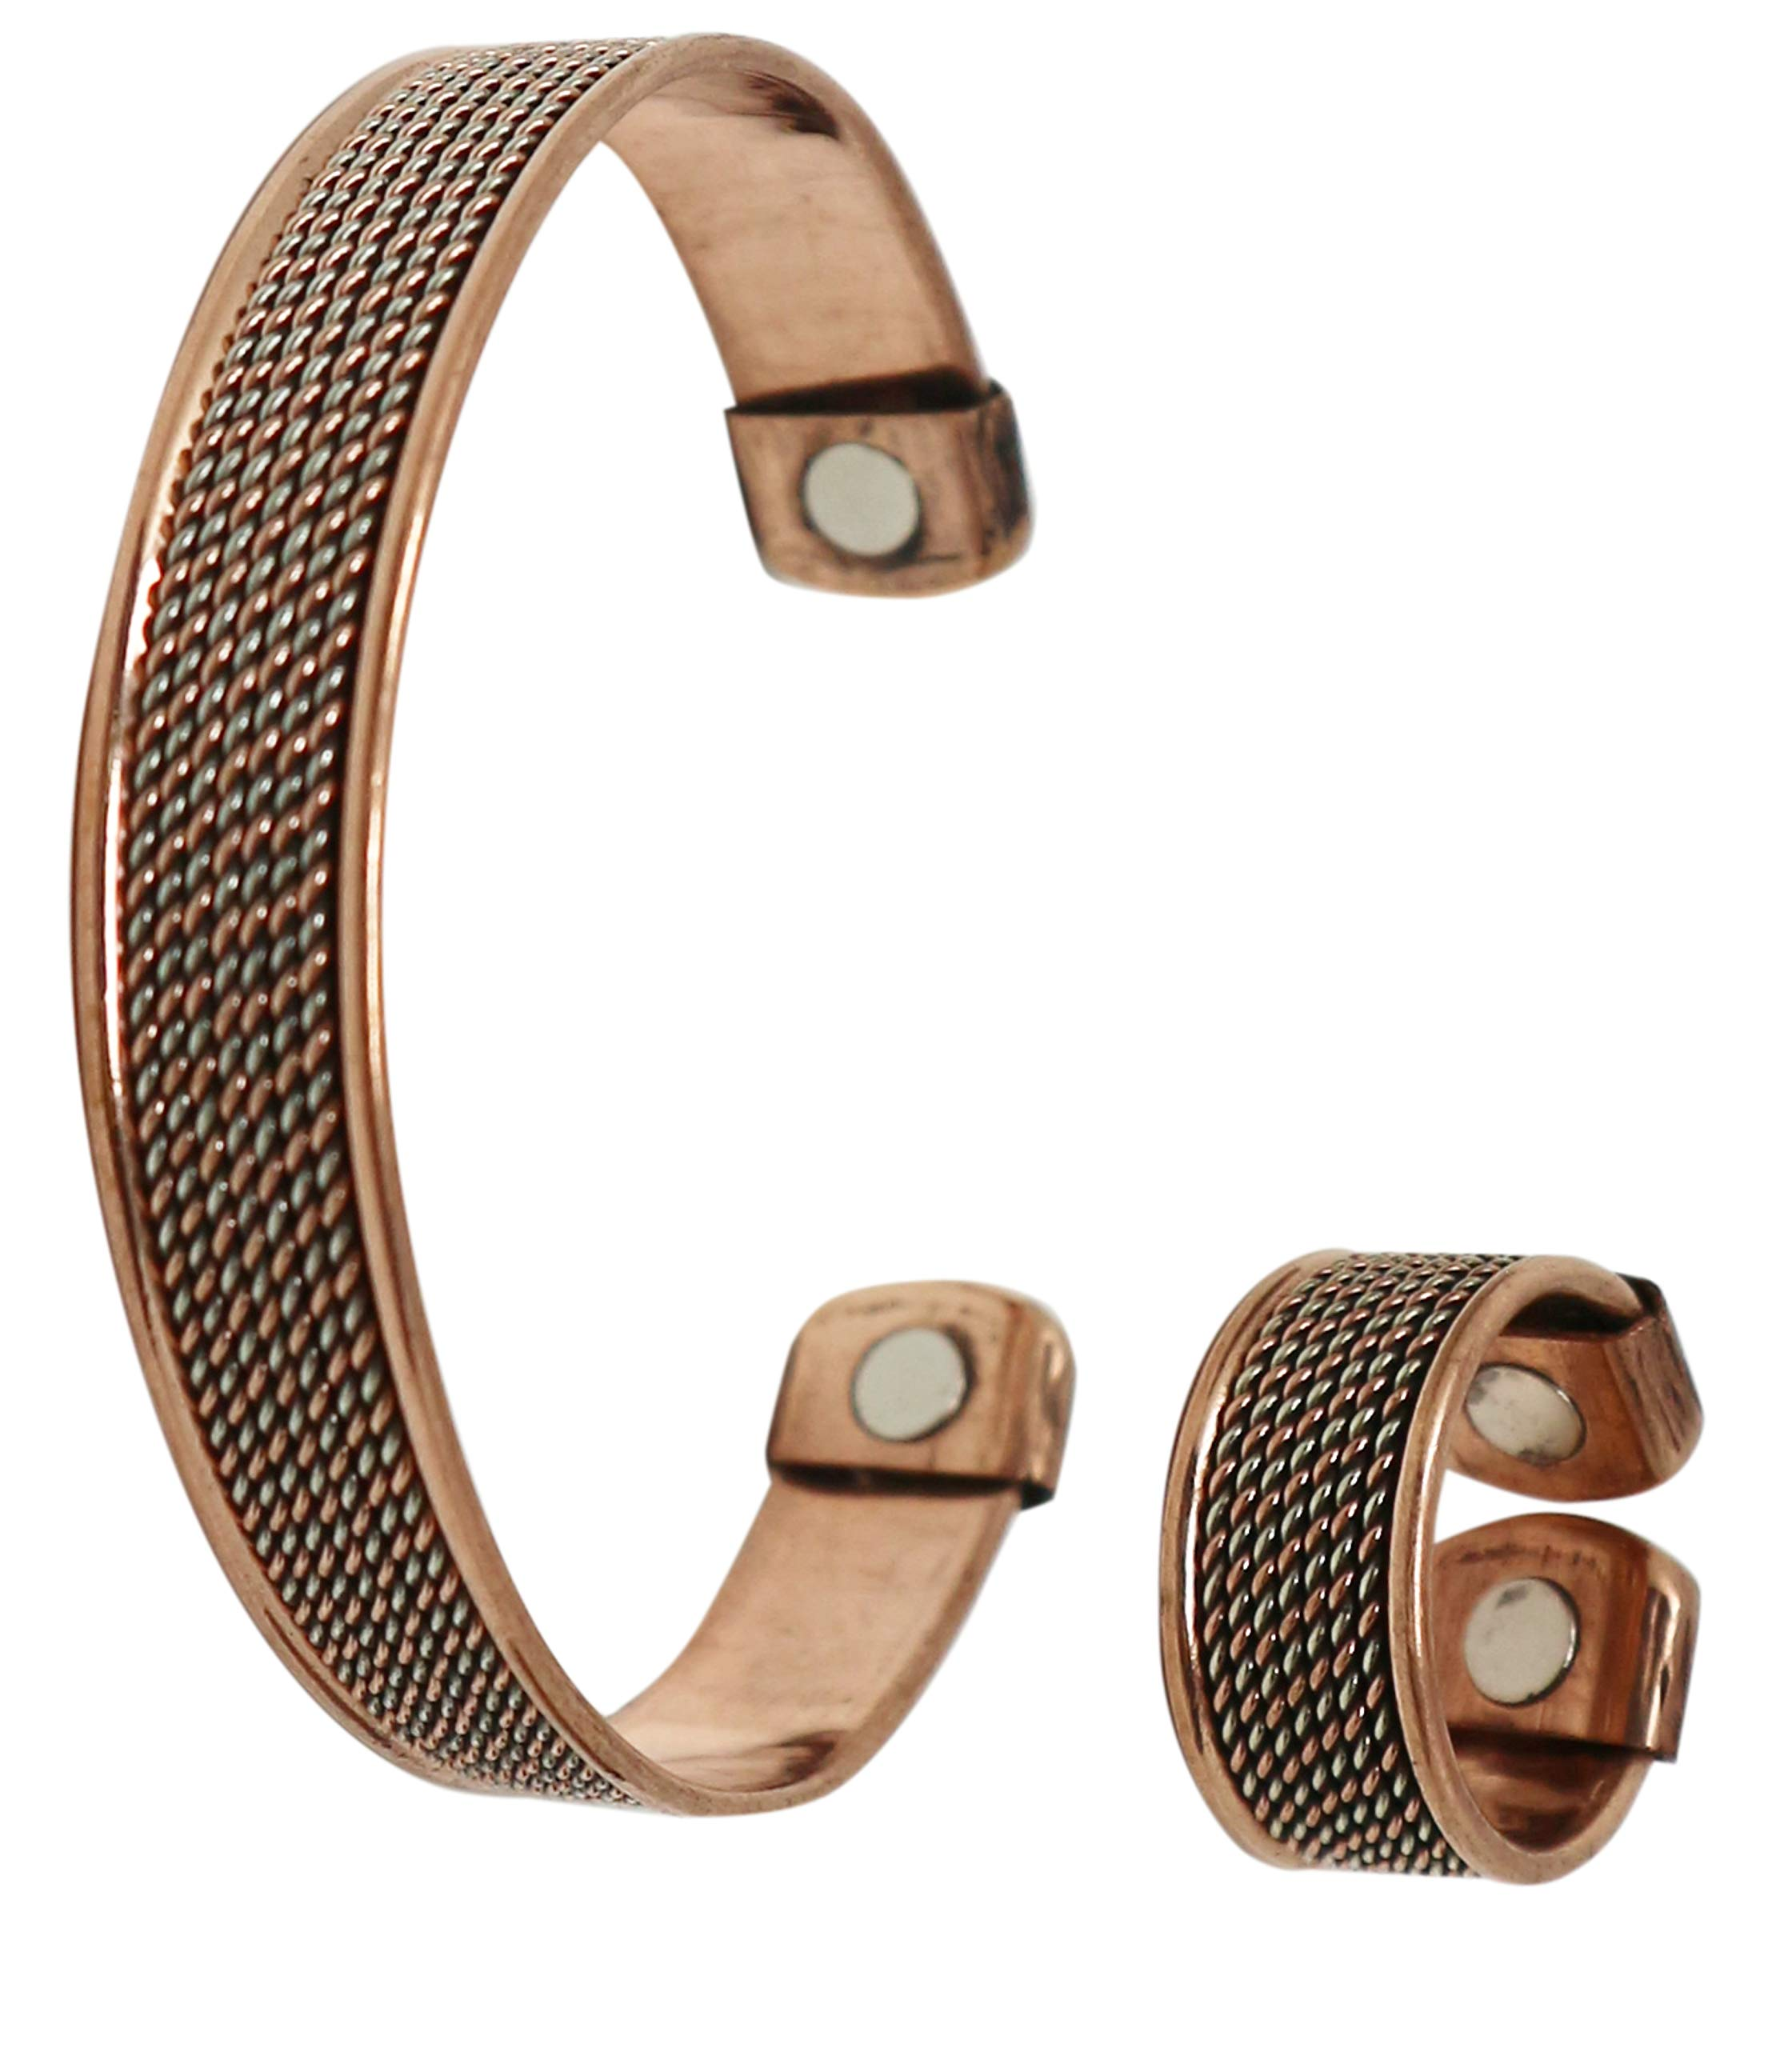 COPPERVAST Copper Bracelet and Ring for Arthritis-Magnetic Therapy Effective & Natural Relief for Joint Pain and Carpal Tunnel for Men and Women(Chain Inlay) by Coppervast